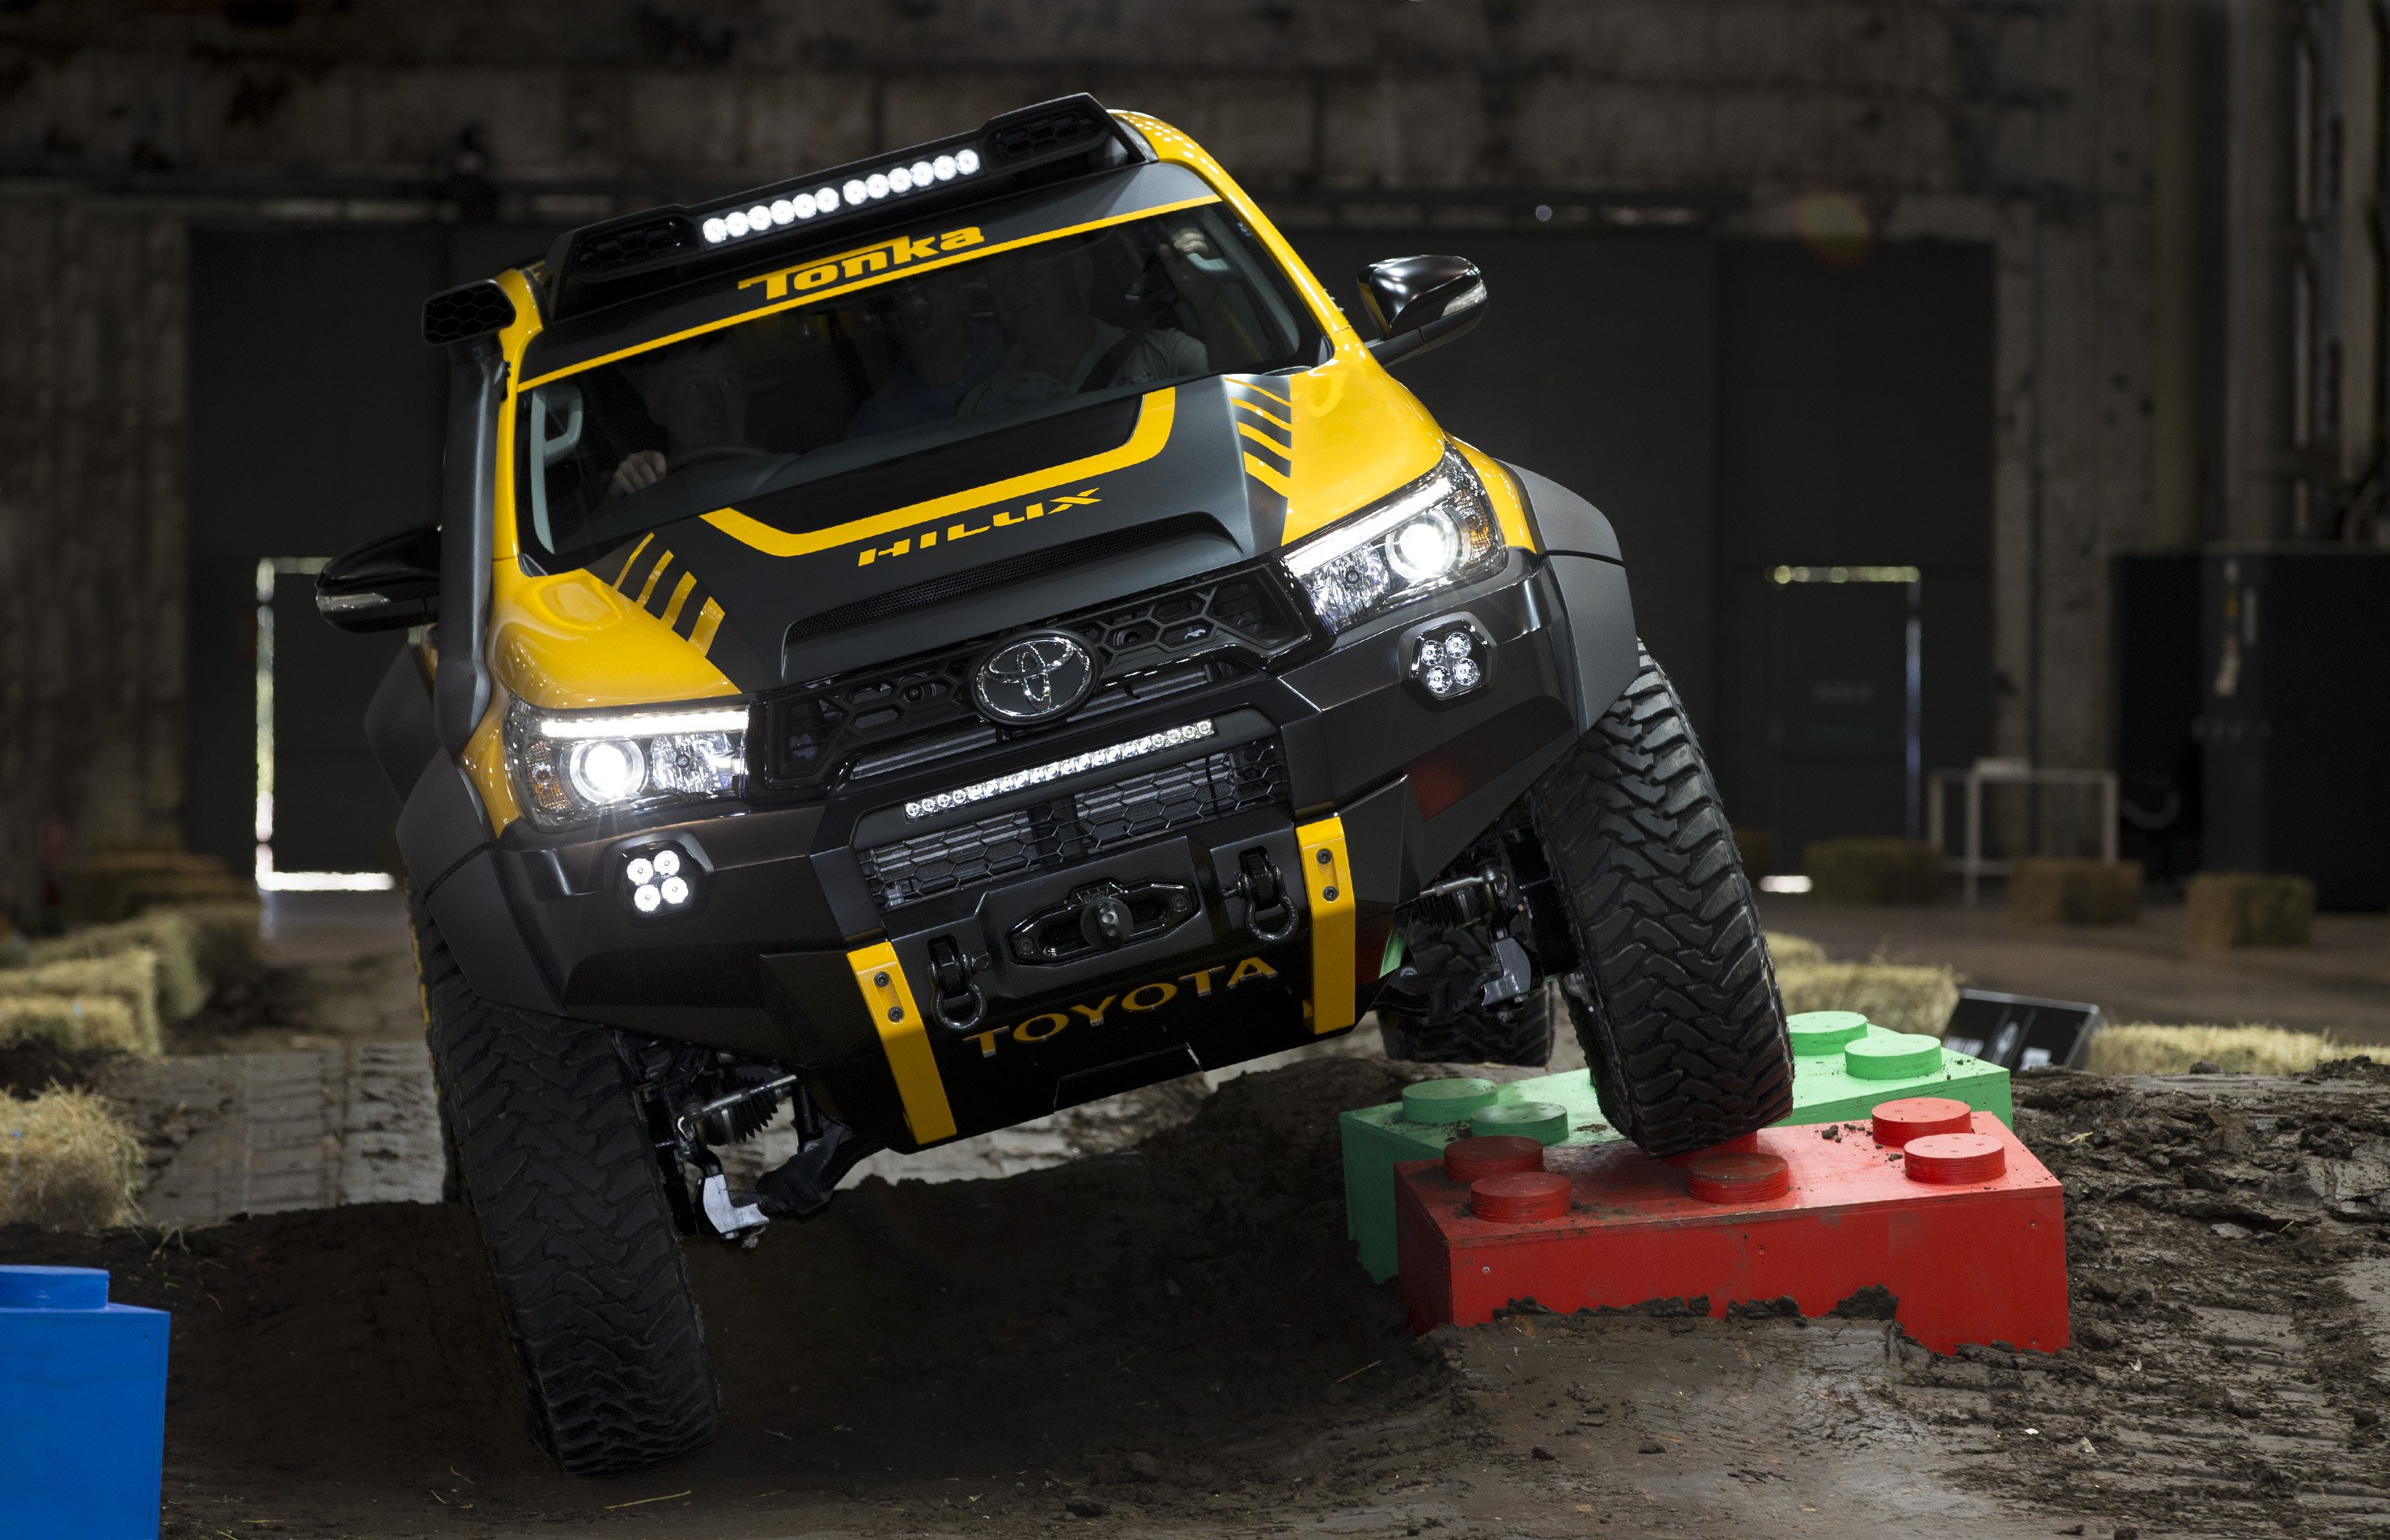 Ford Ranger, Toyota Hilux modifications a target for QLD